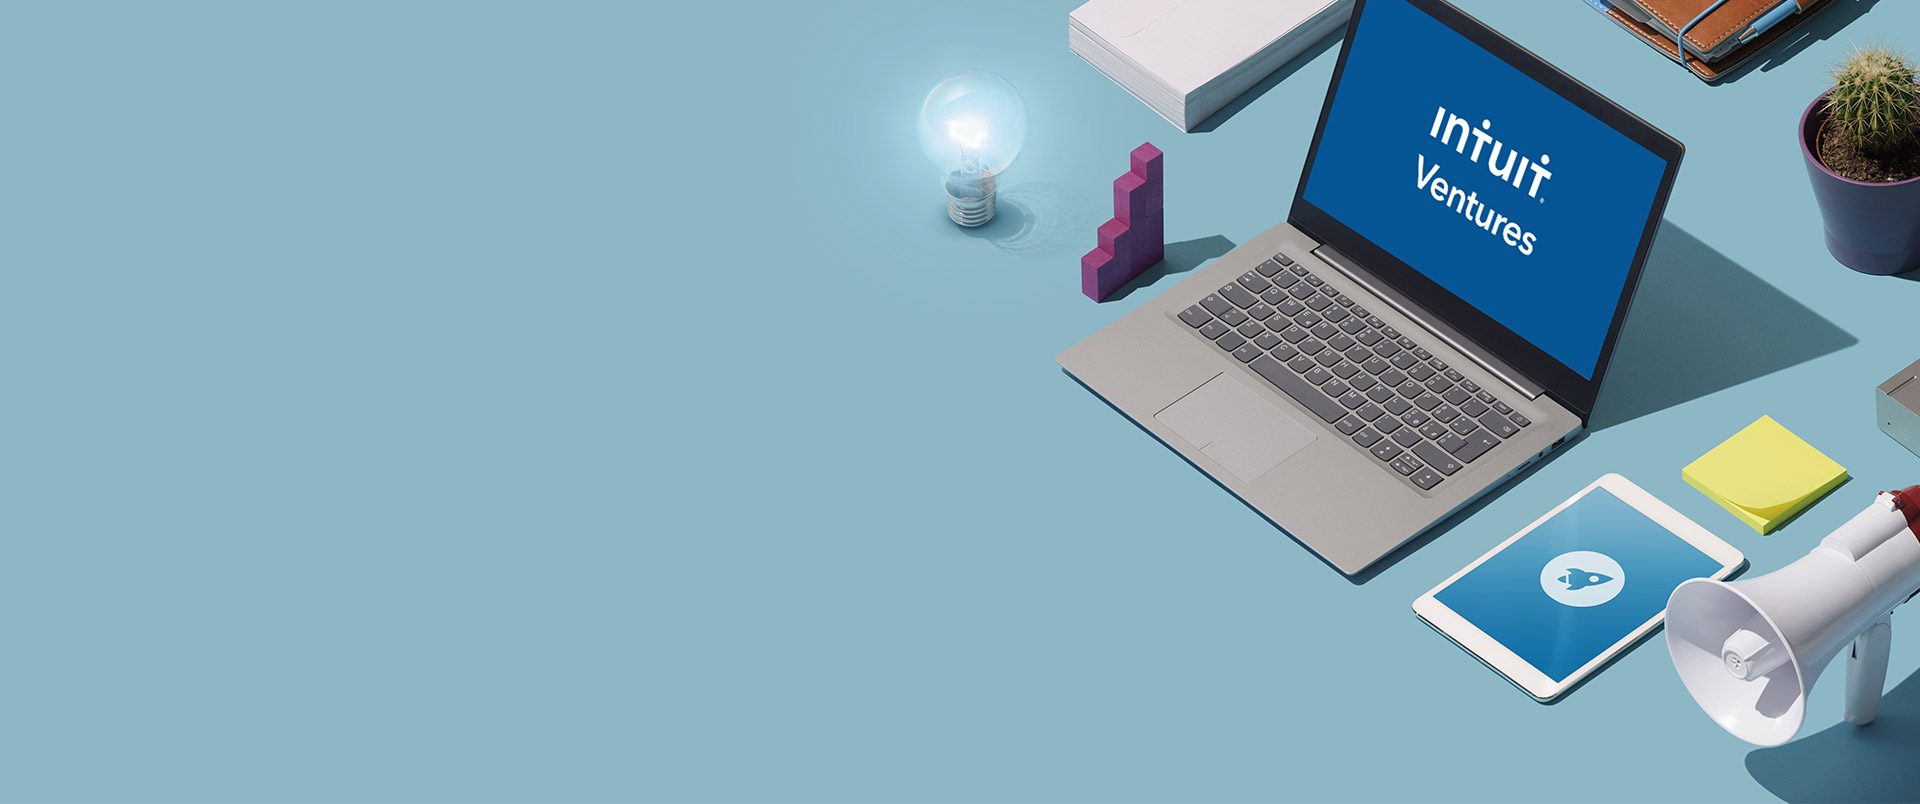 """illustration of a laptop with """"start up"""" on the display, along with other office tools"""